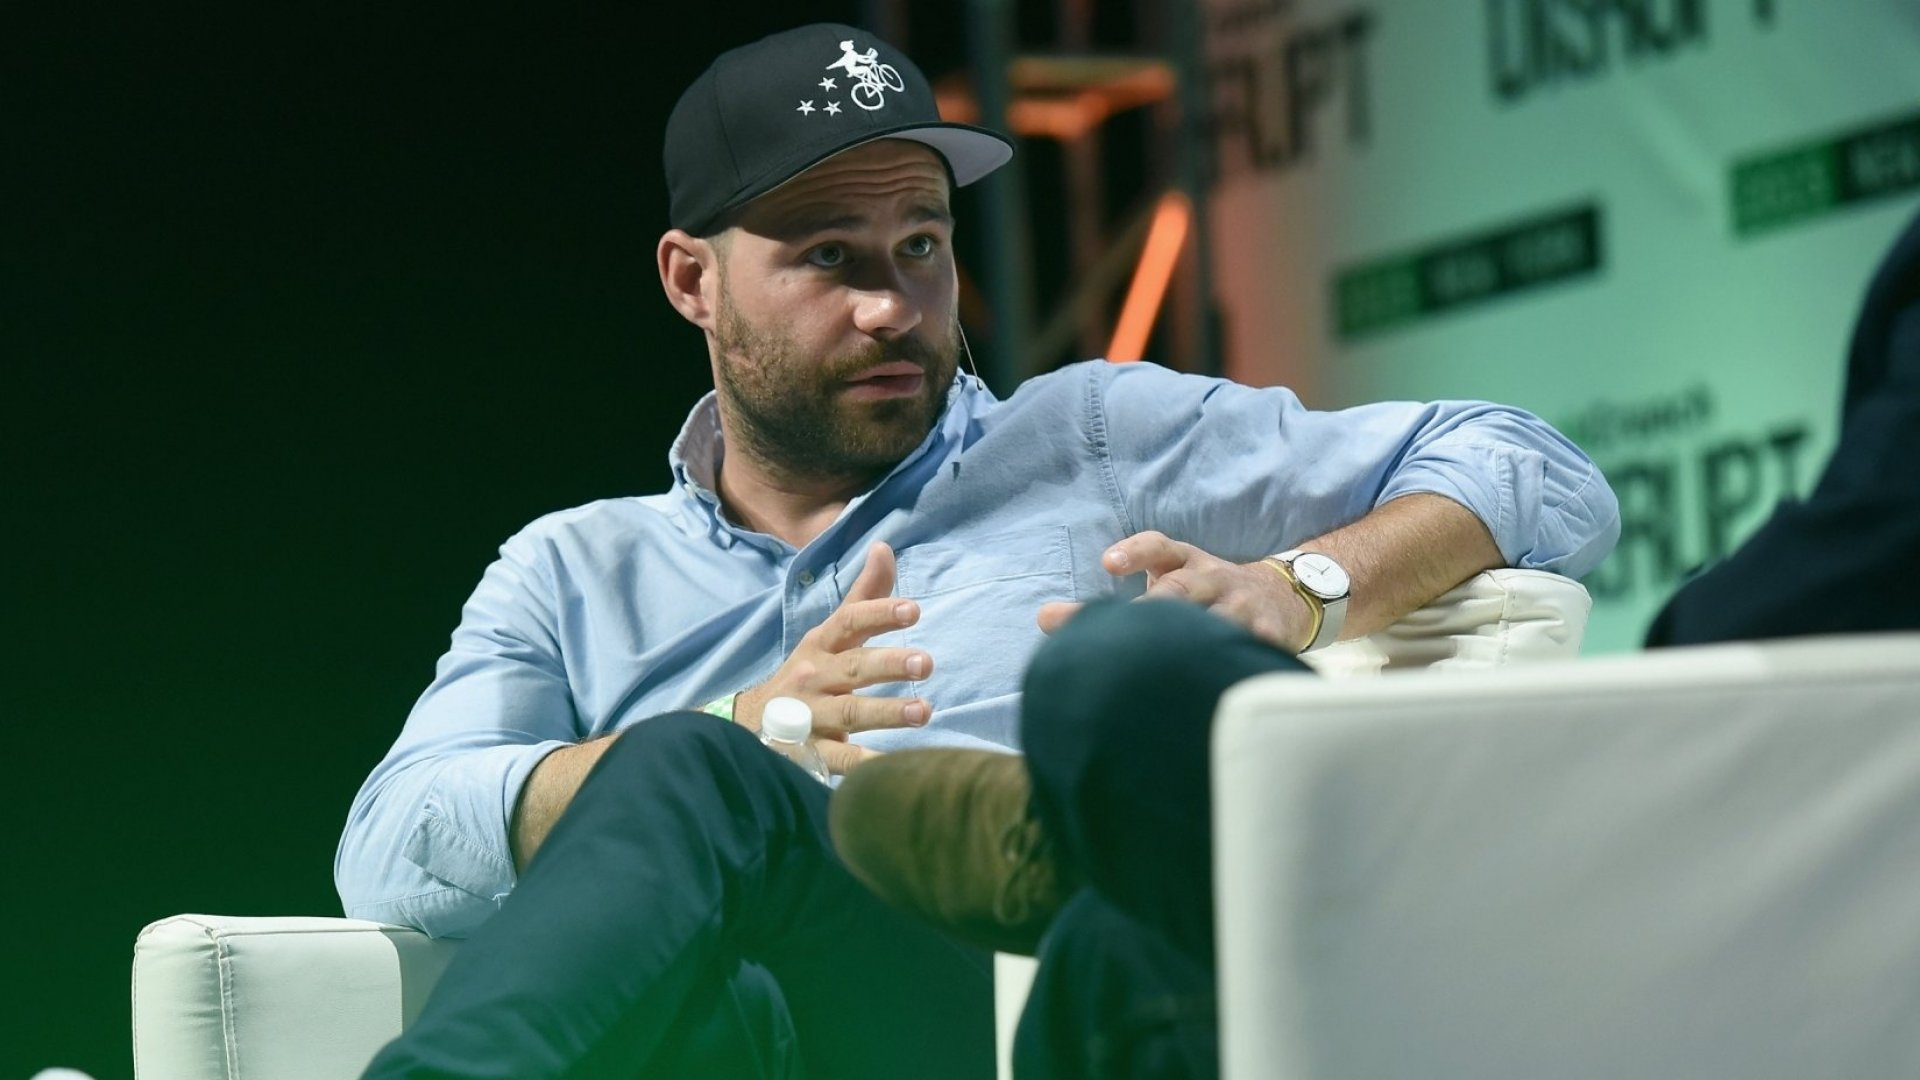 Food Delivery App Postmates Plans to File for an IPO in September